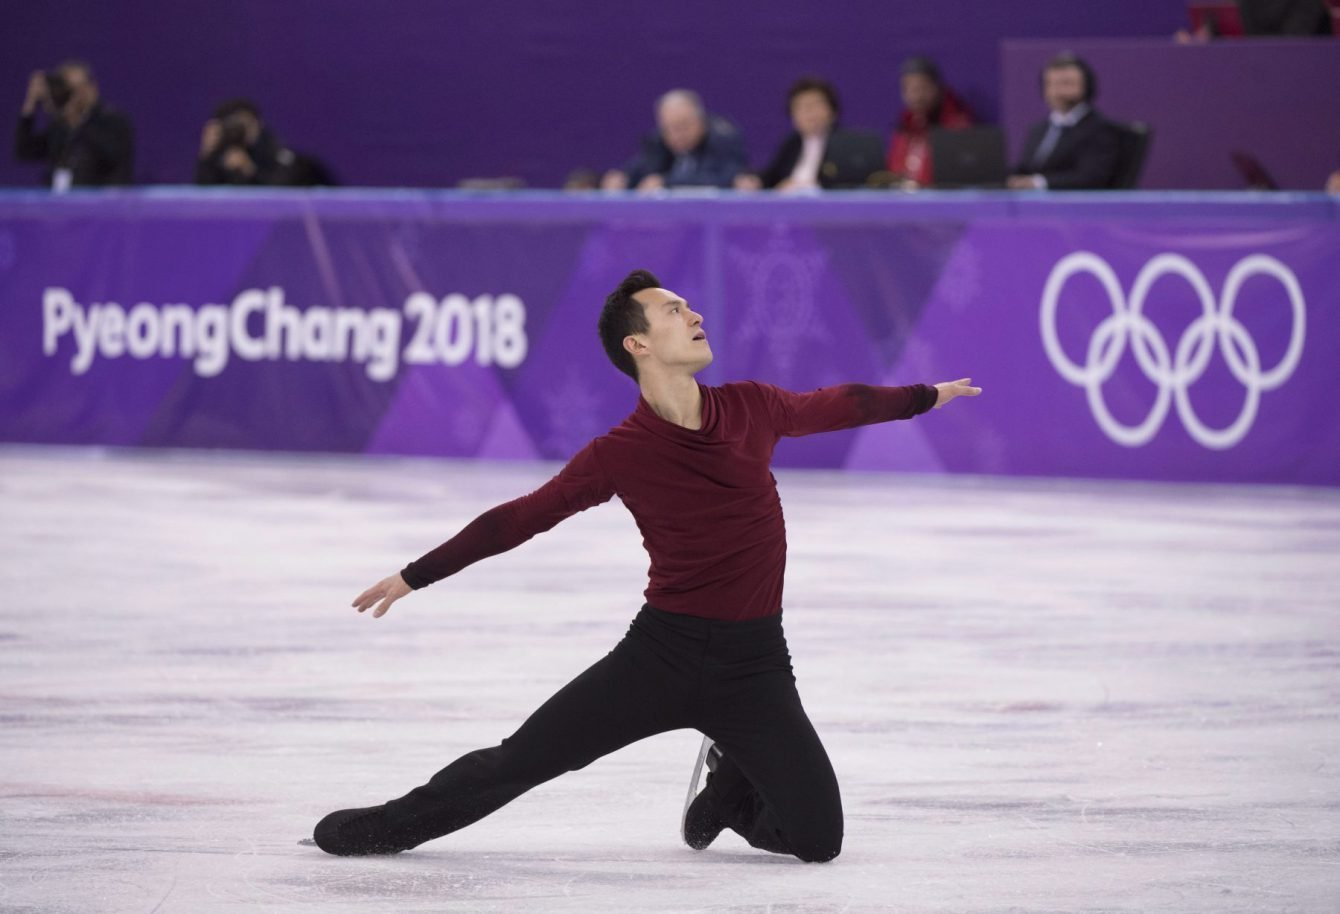 Canadian Patrick Chan, skating at the 2018 Winter Olympics in South Korea